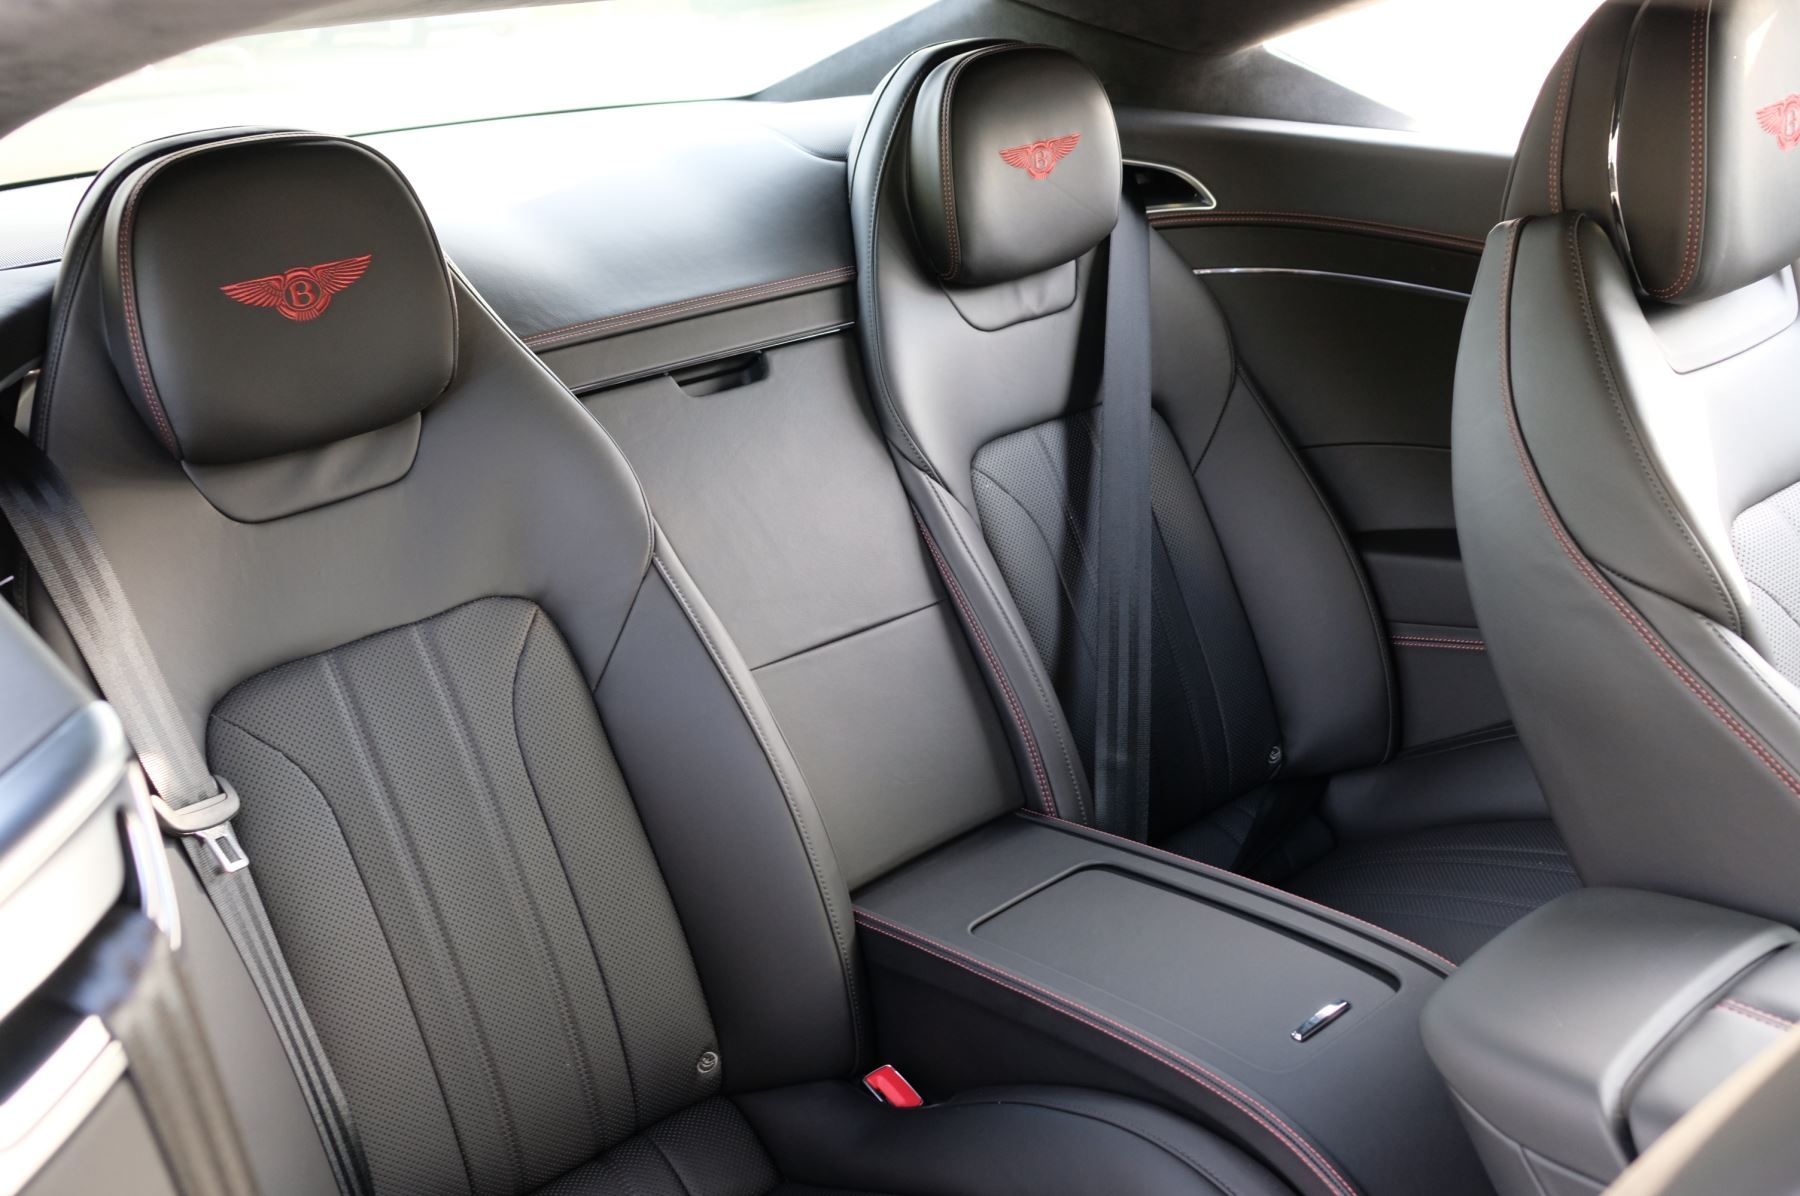 Bentley Continental GT 4.0 V8 2dr Auto [City+Touring Spec] image 13